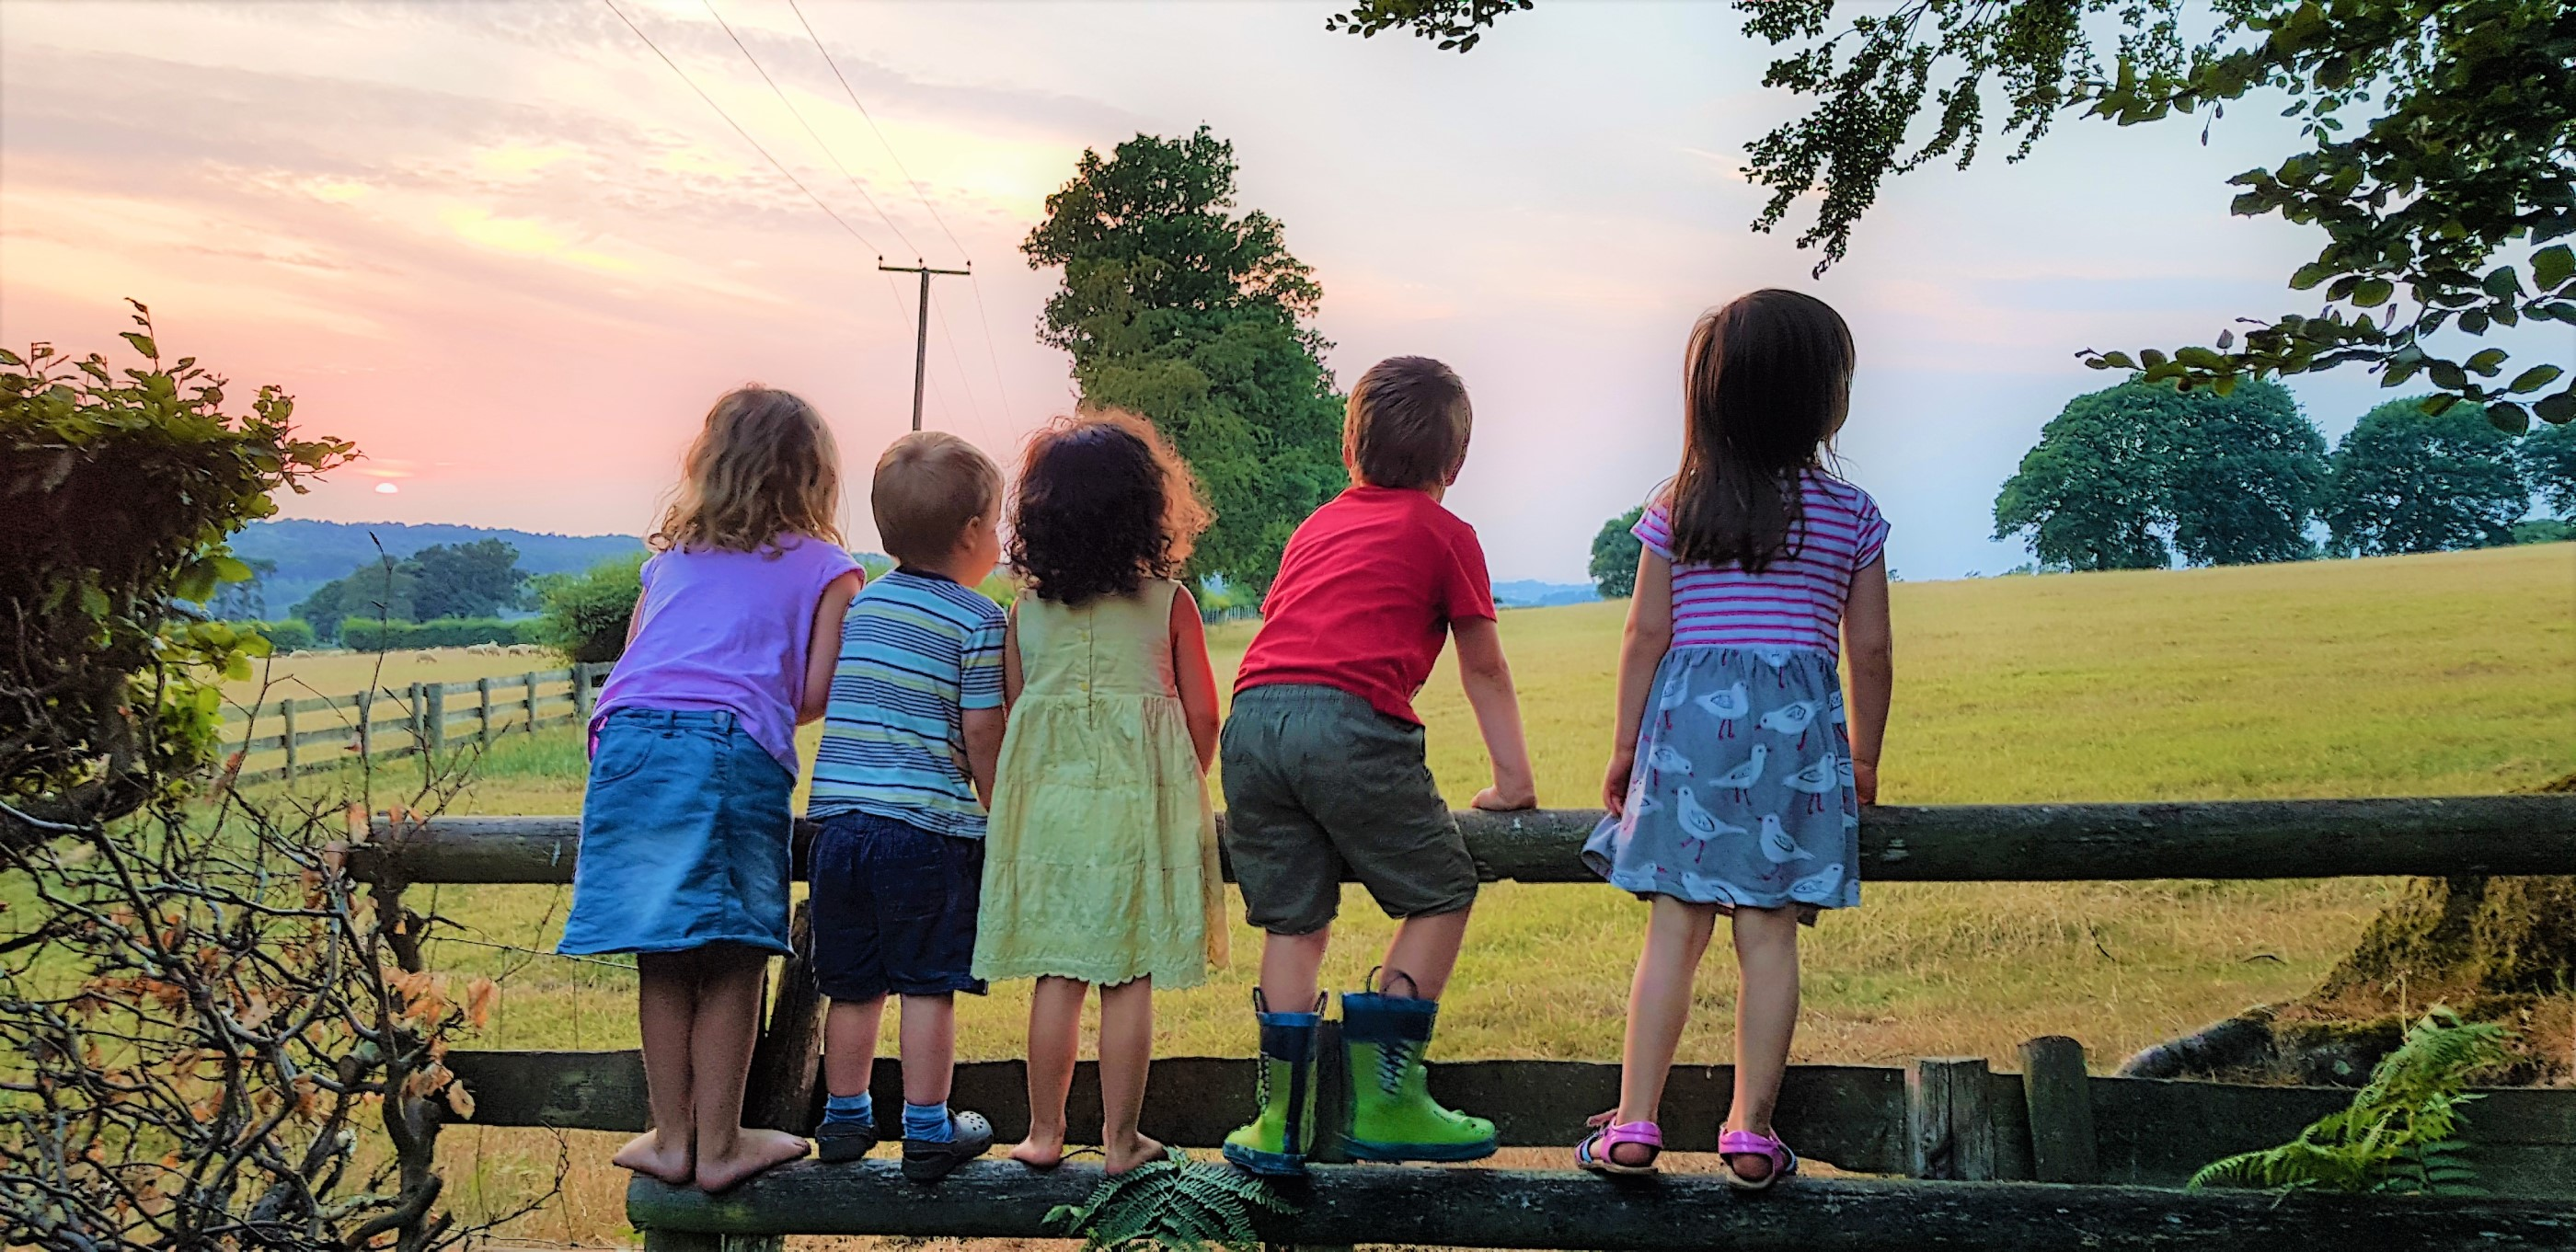 Children standing on a fence at sunset